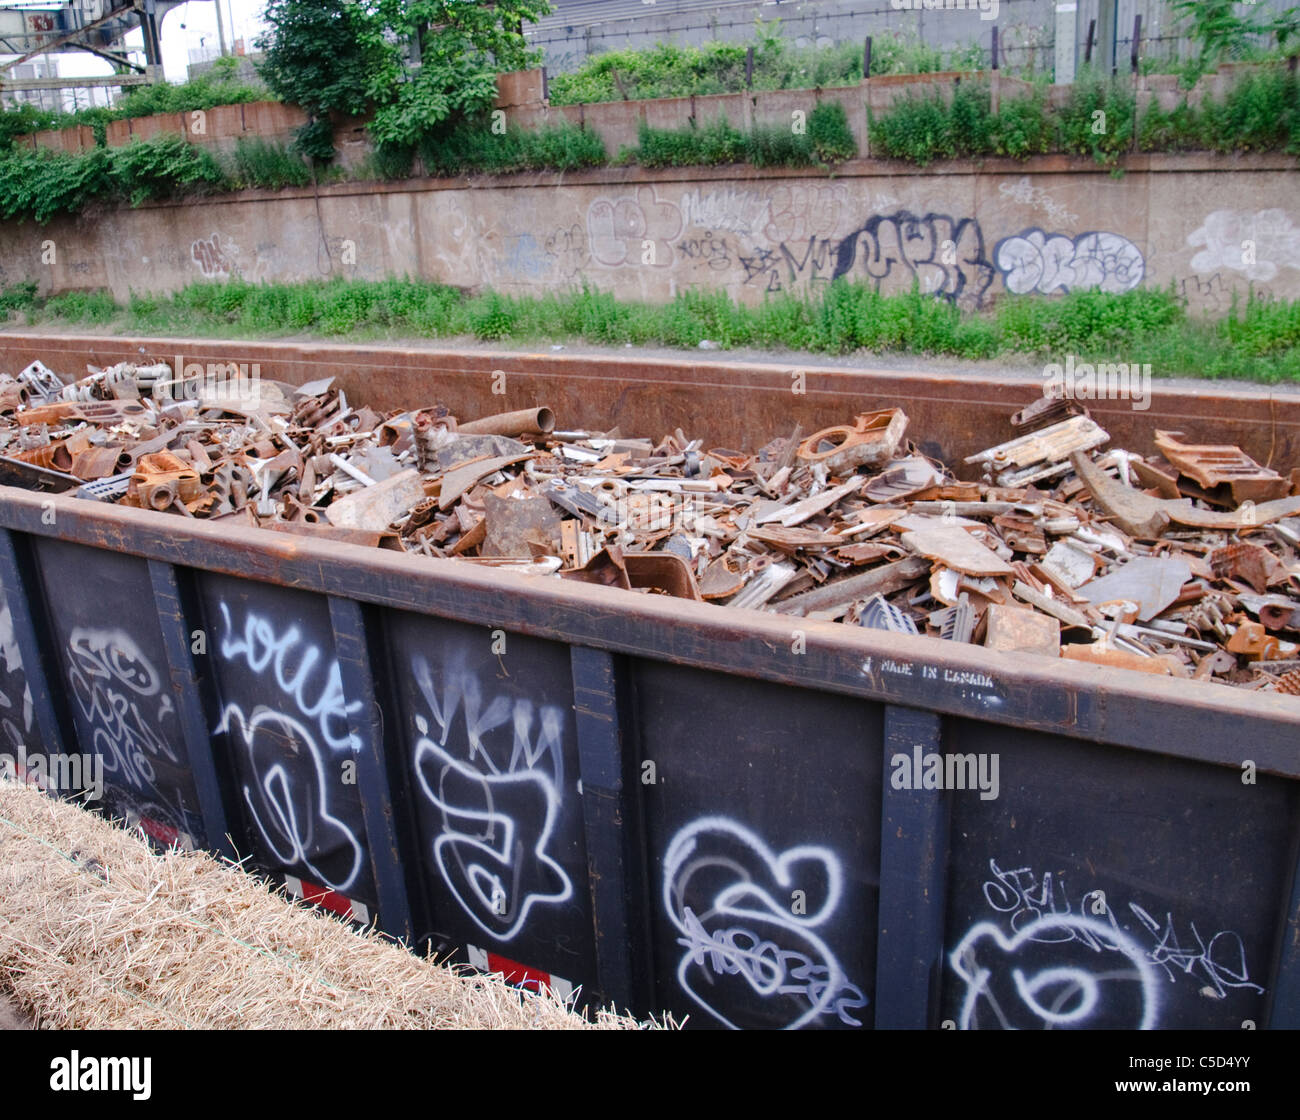 Scrap Metal Cargo Train Wagon, Junk Yard, Brooklyn, New York City - Stock Image